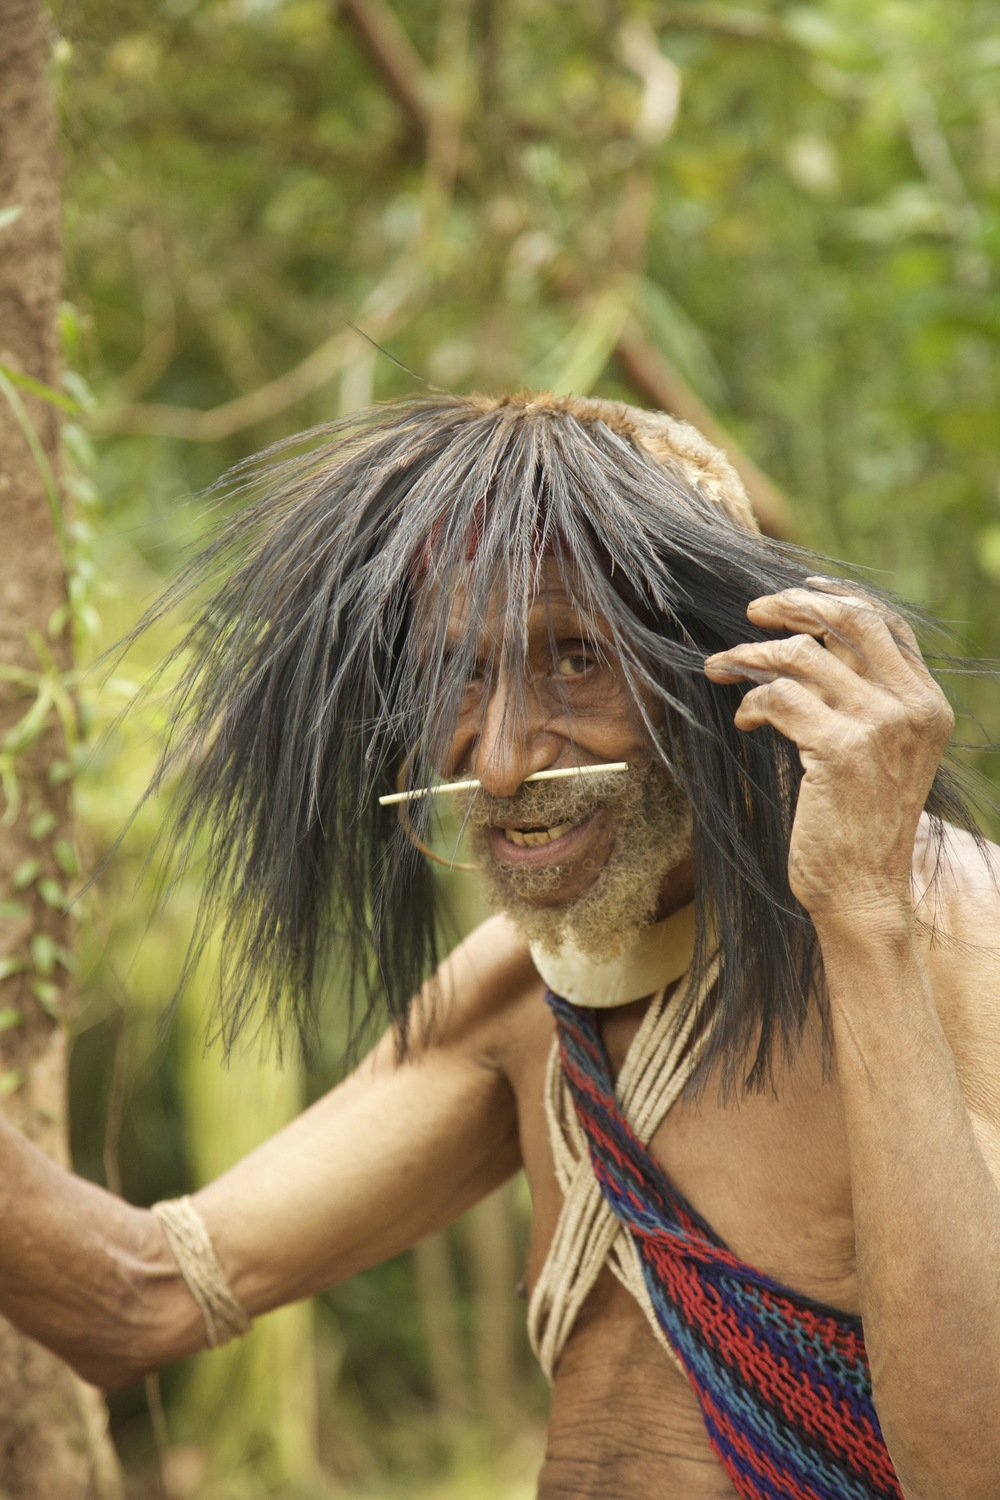 The oldest living Kosua man who will share his colorful stories and song from the bygone era of widespread cannibalism.